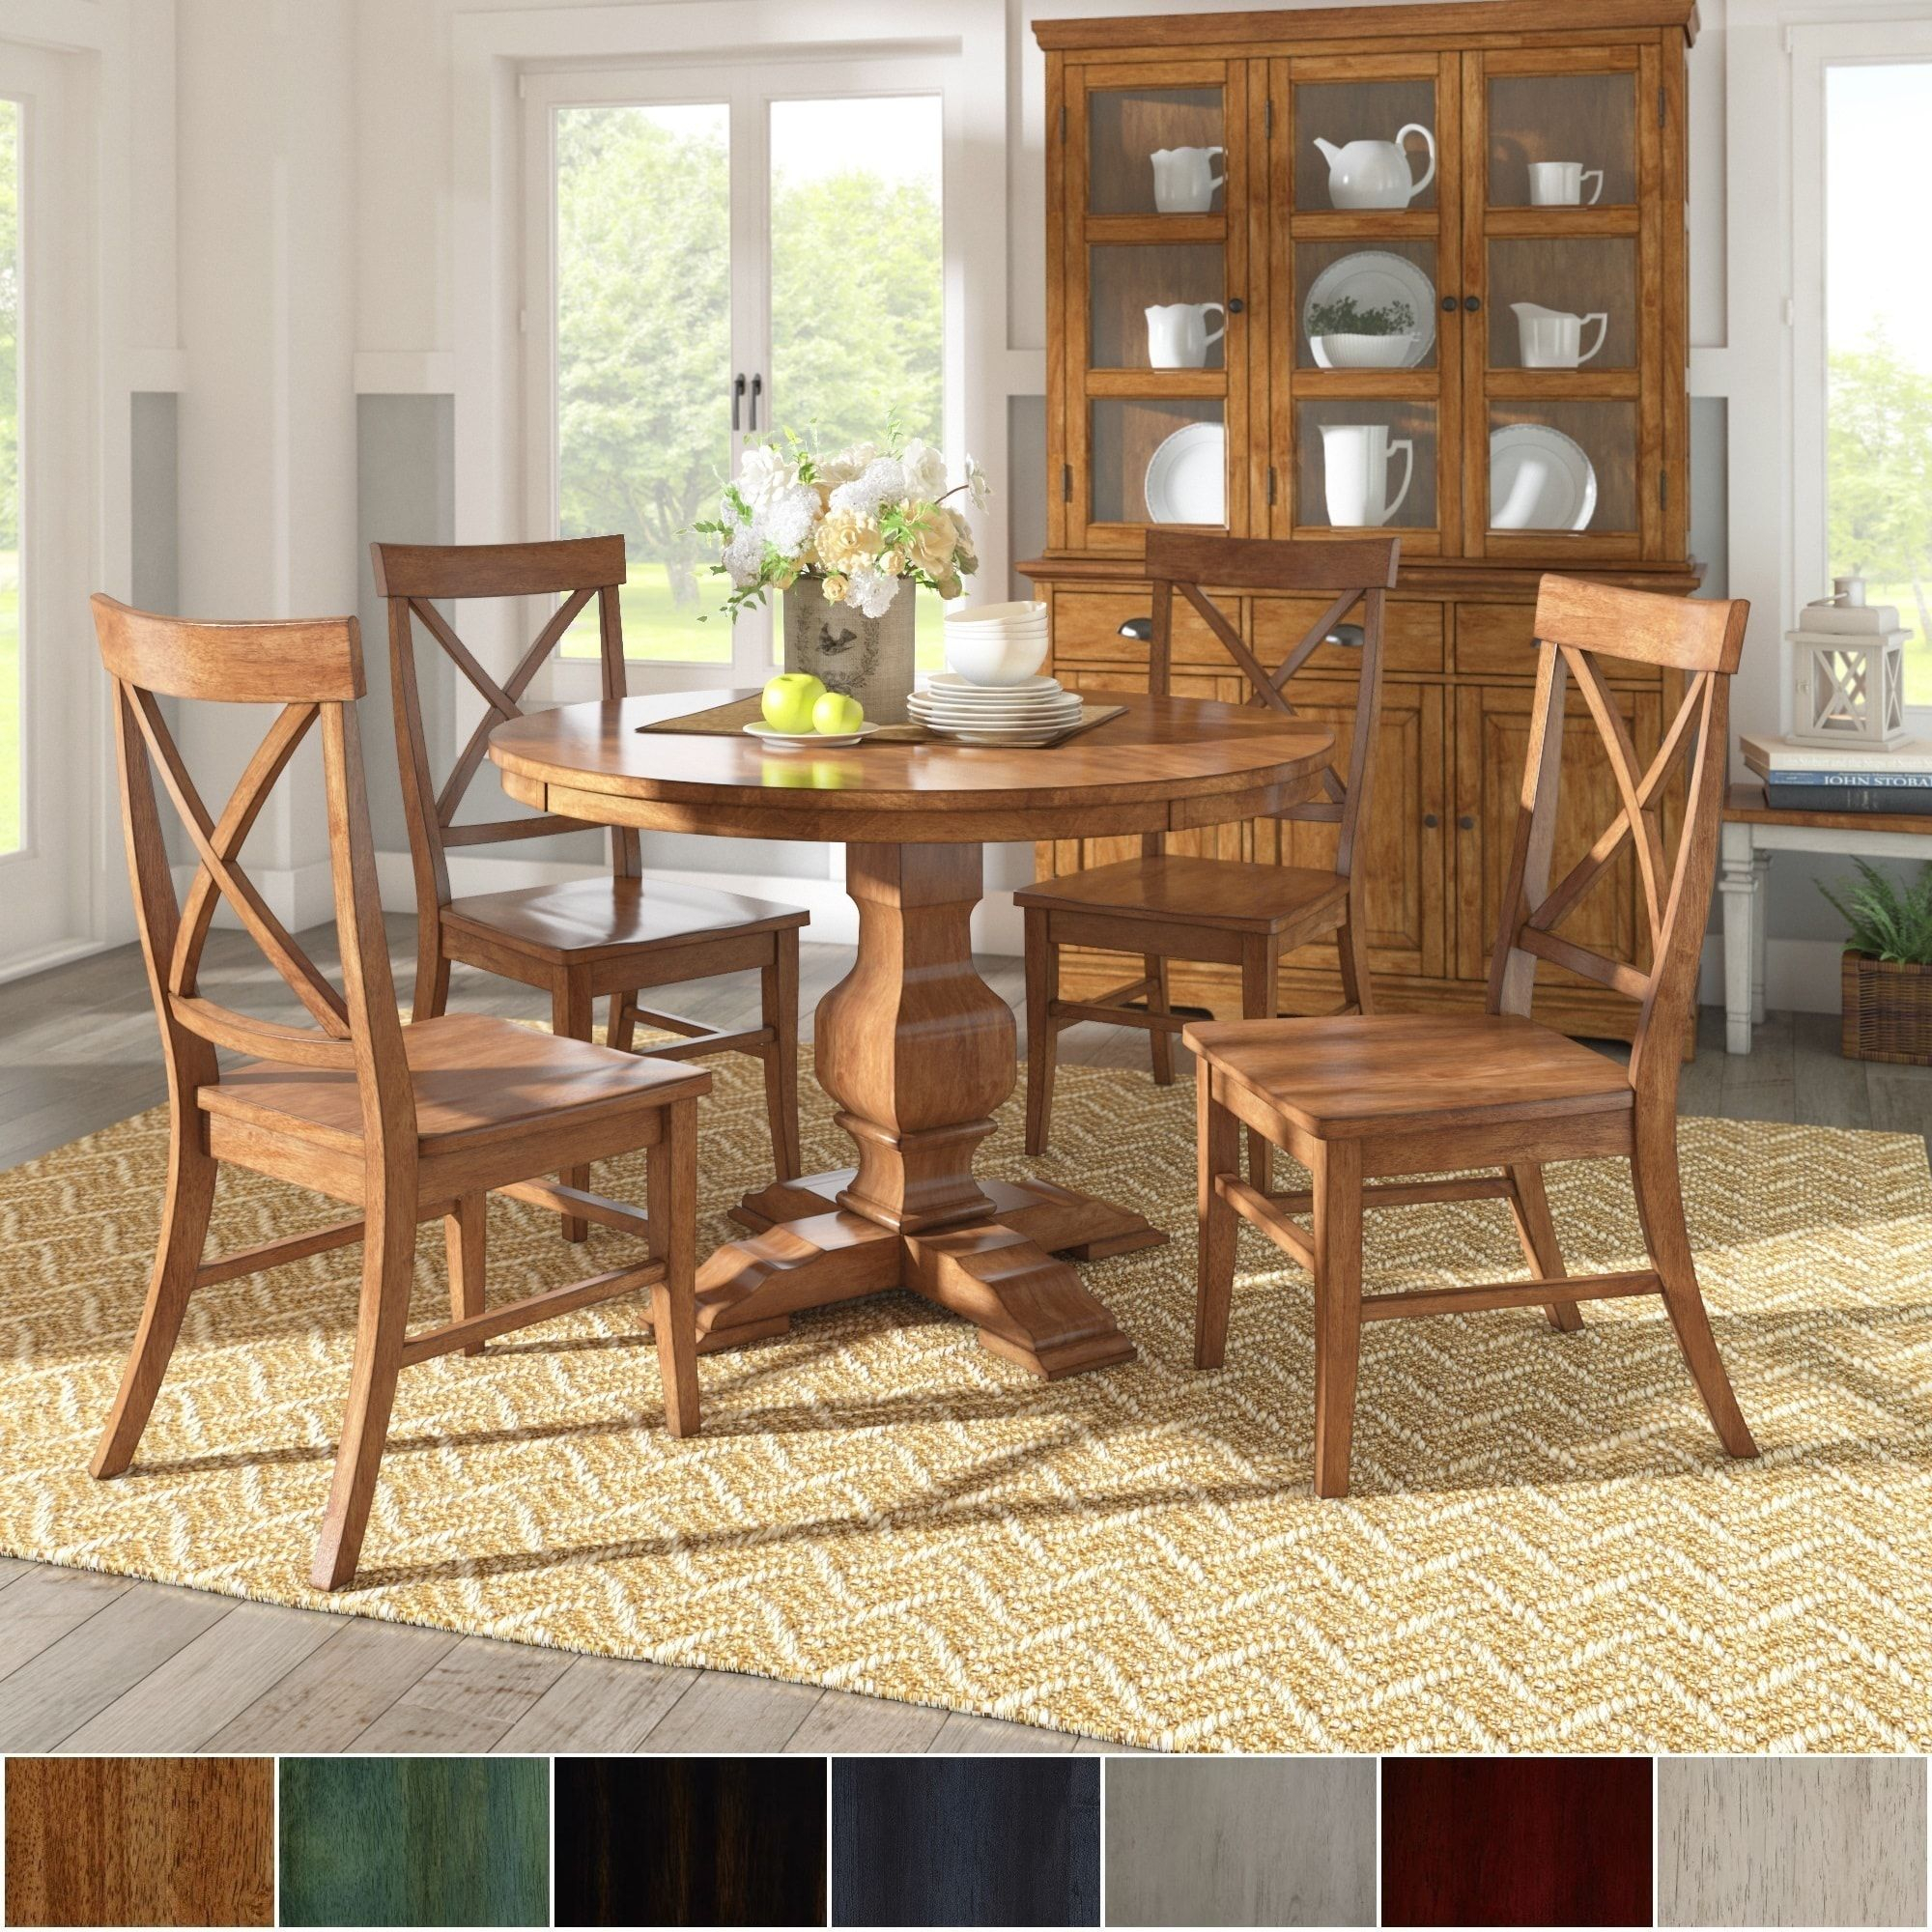 Eleanor Oak Finish Wood 5 Piece Round Table X Back Chairs Dining Set Intended For Recent Ephraim 5 Piece Dining Sets (Photo 17 of 20)